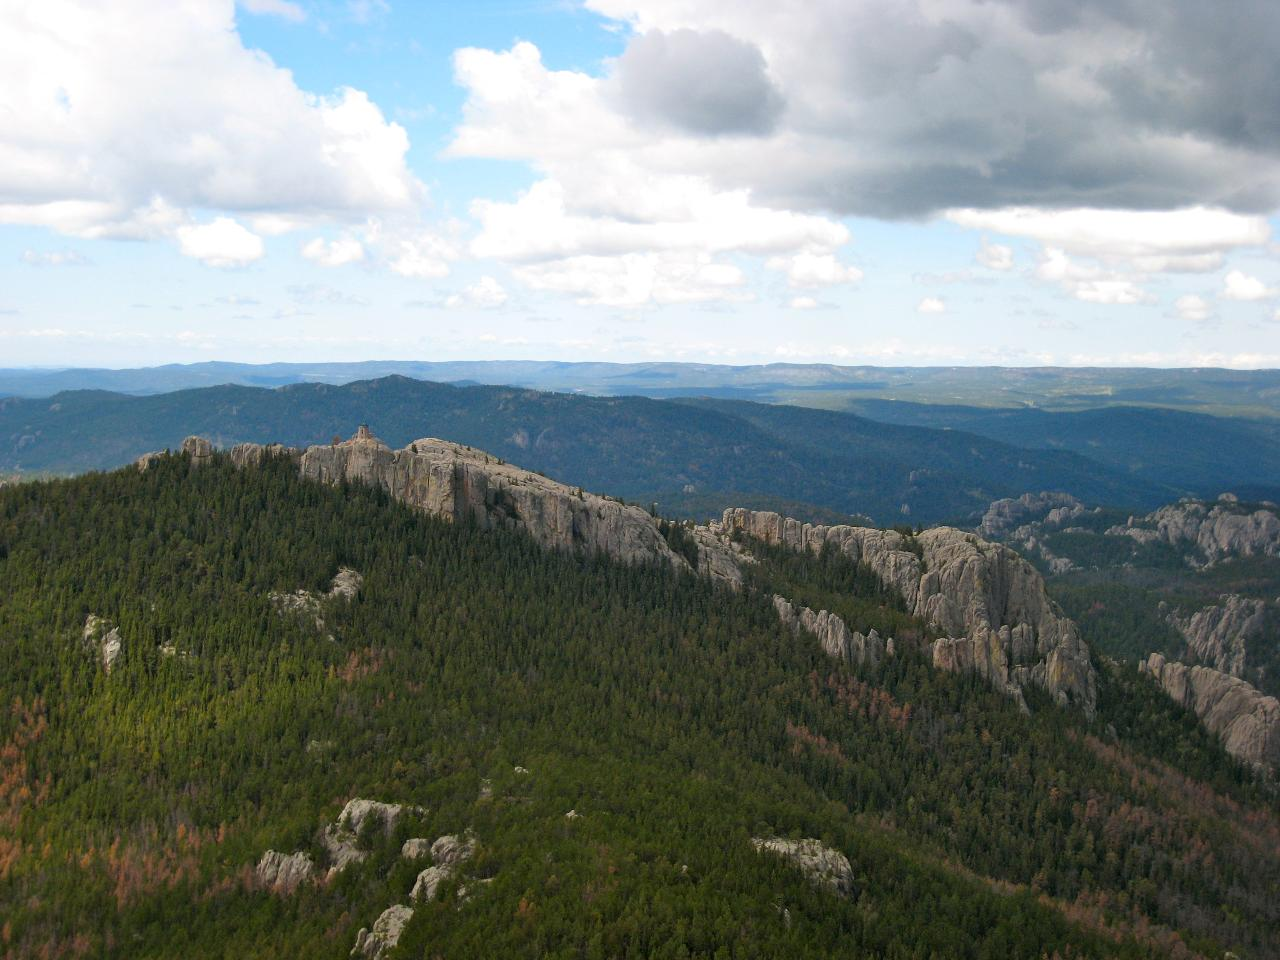 Elkhorn Mountain - $169.99pp - 16-20 minutes, 20 miles loop